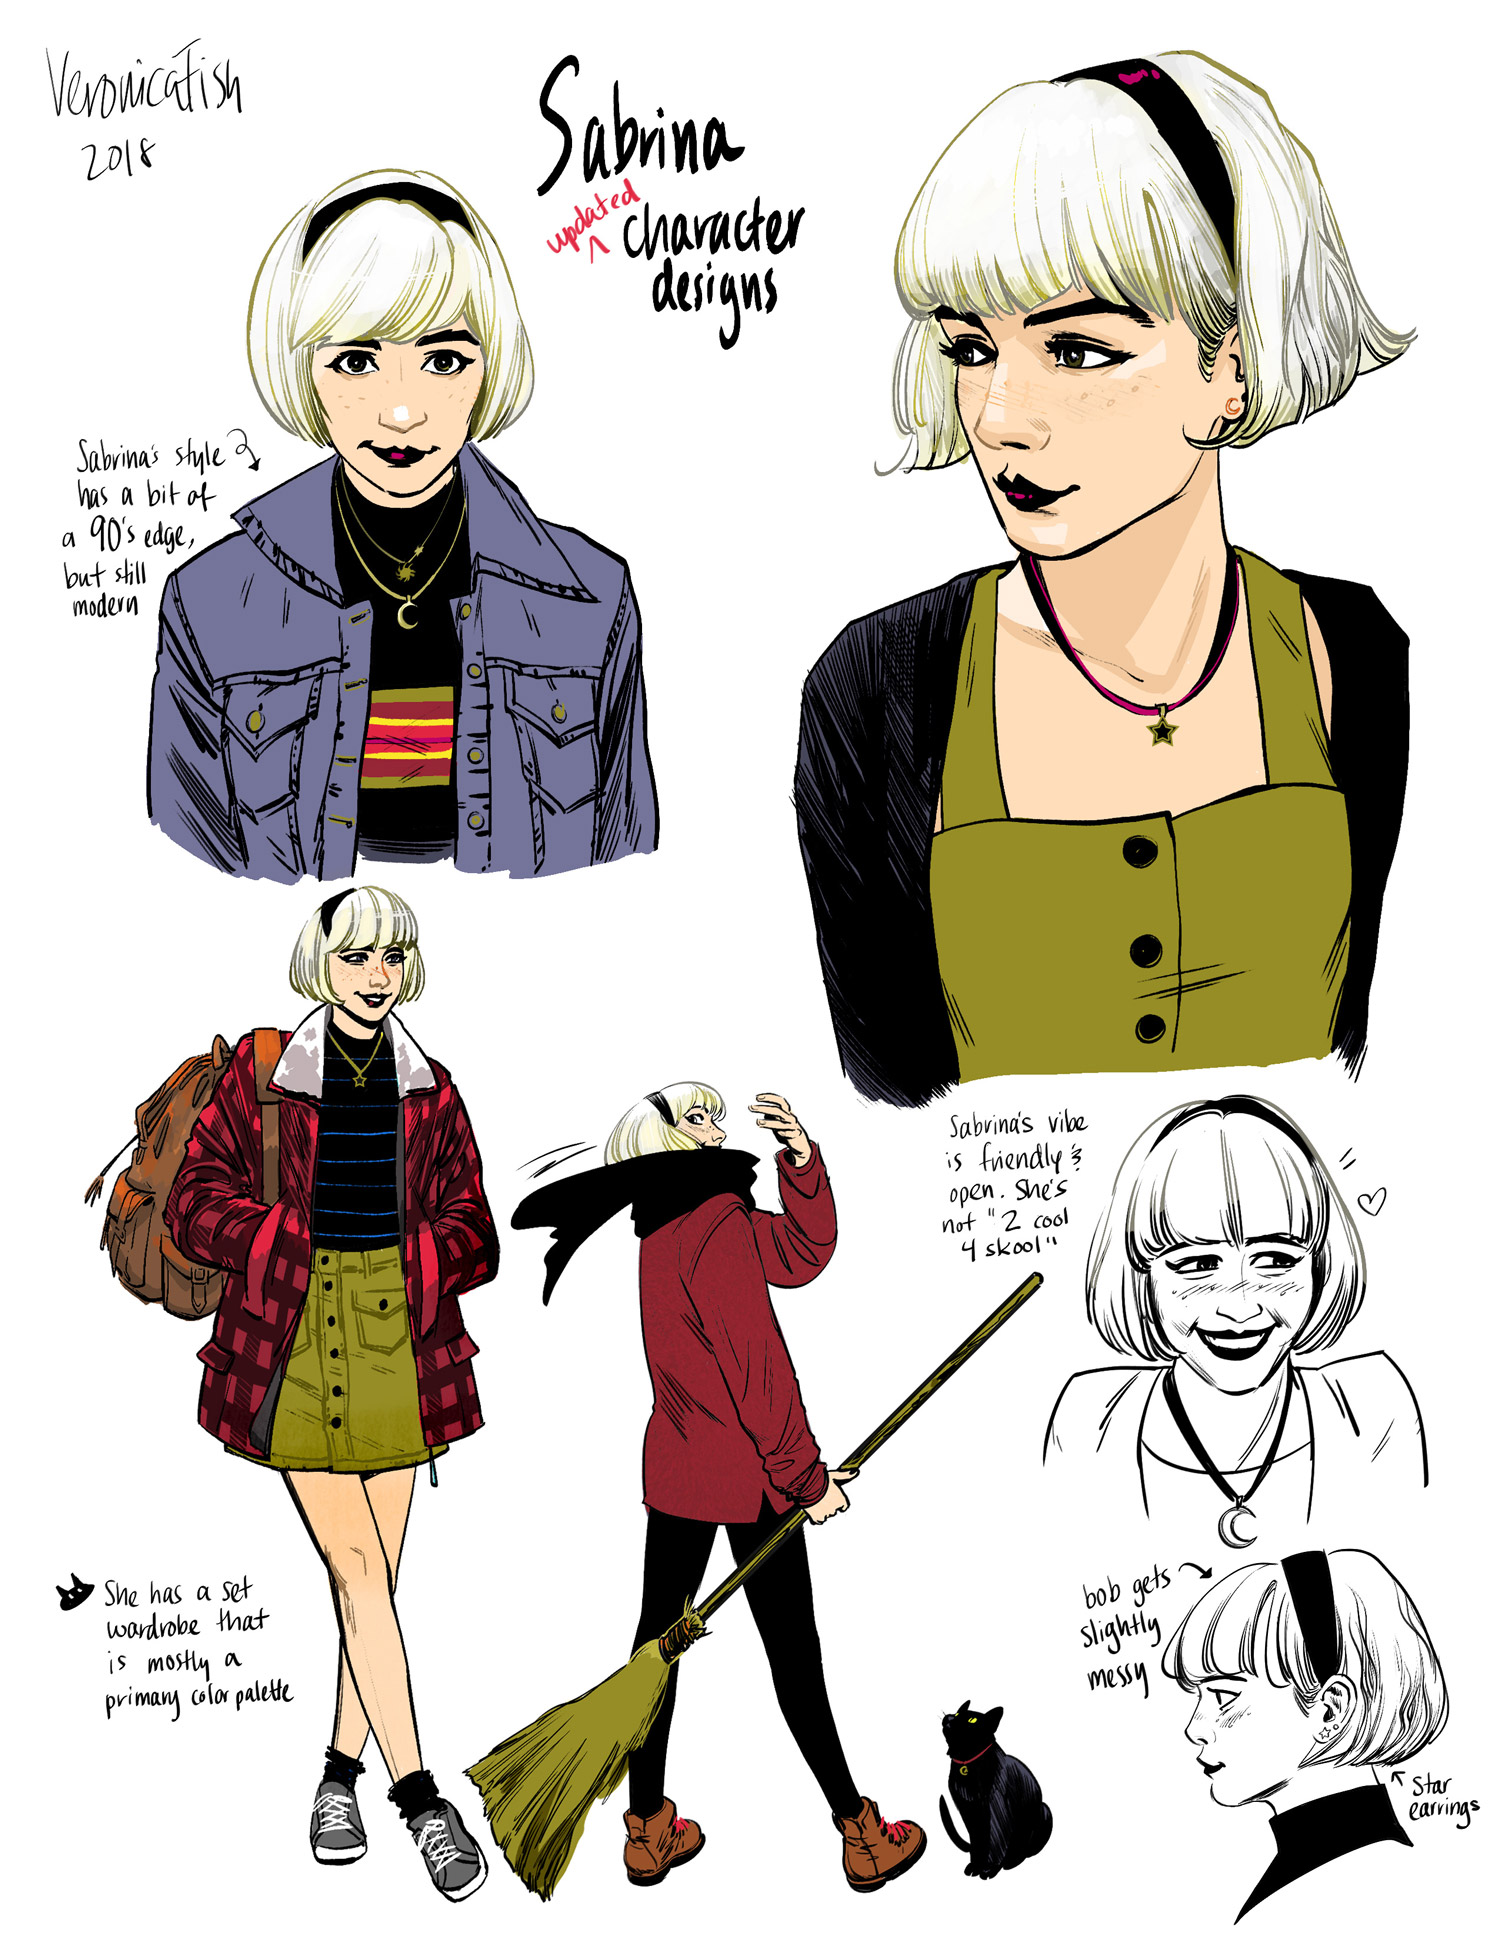 Sabrina the Teenage Witch #1 character designs